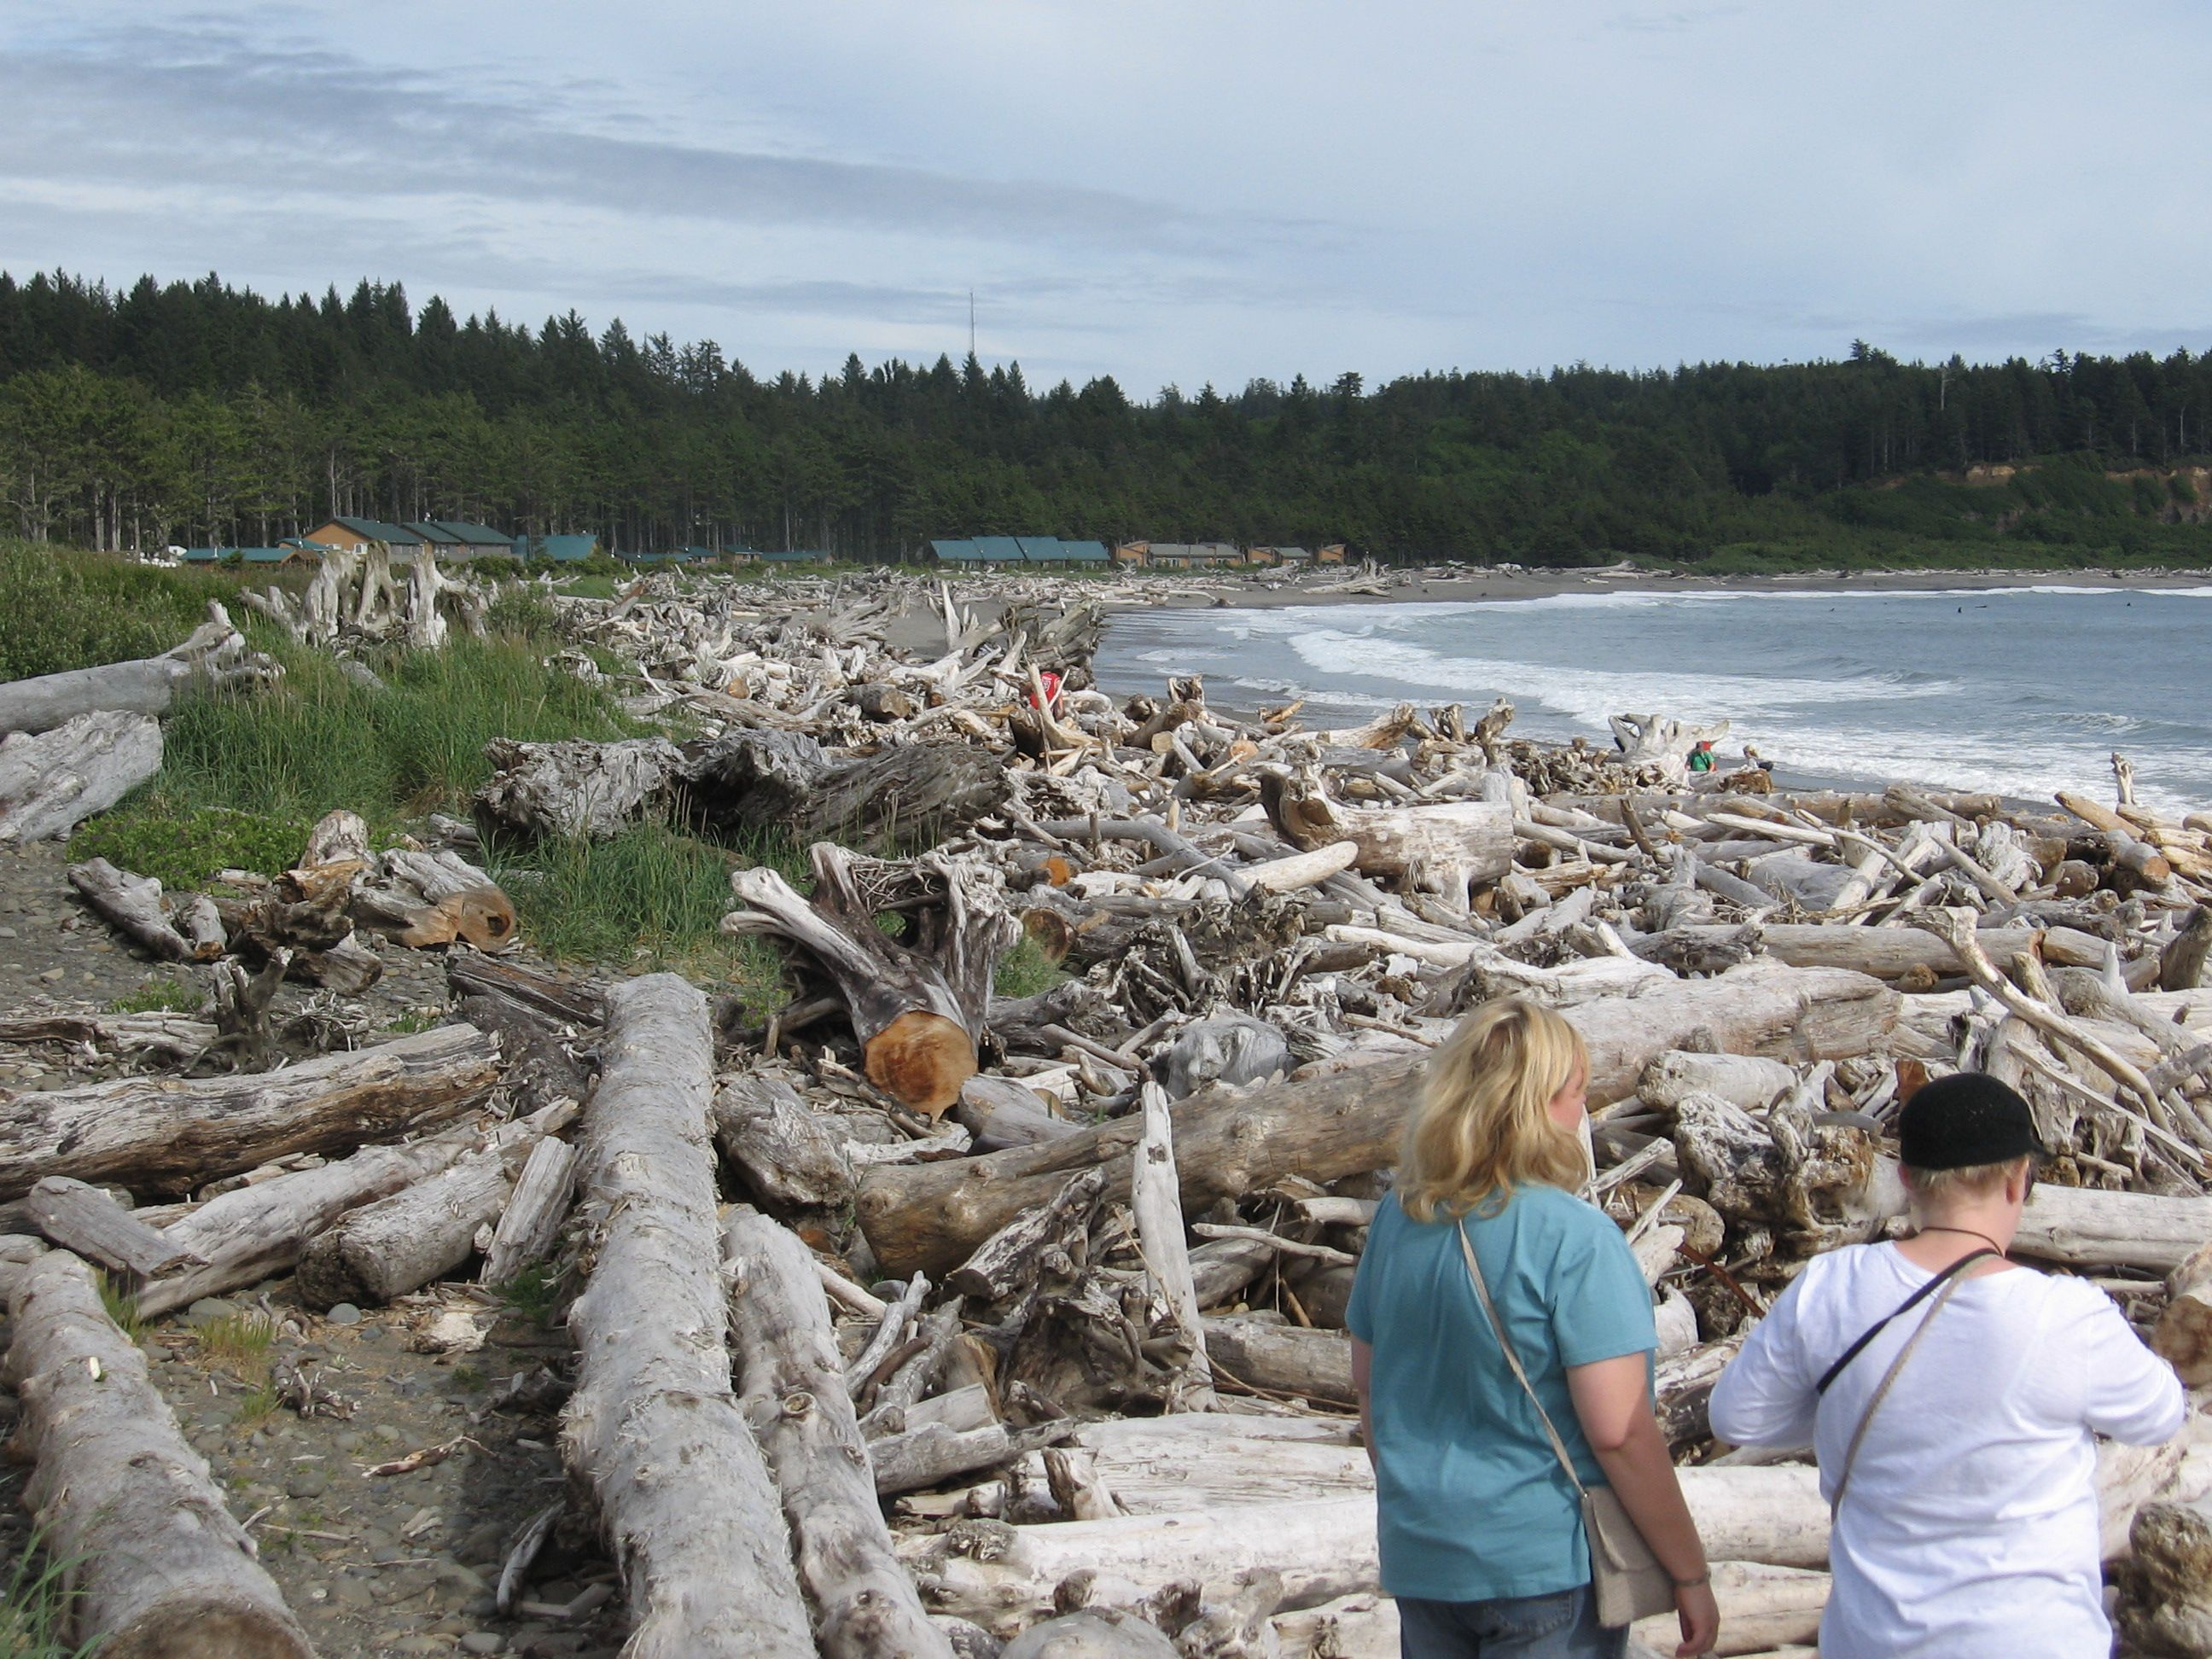 The bones of the forest on First Beach at LaPush, WA